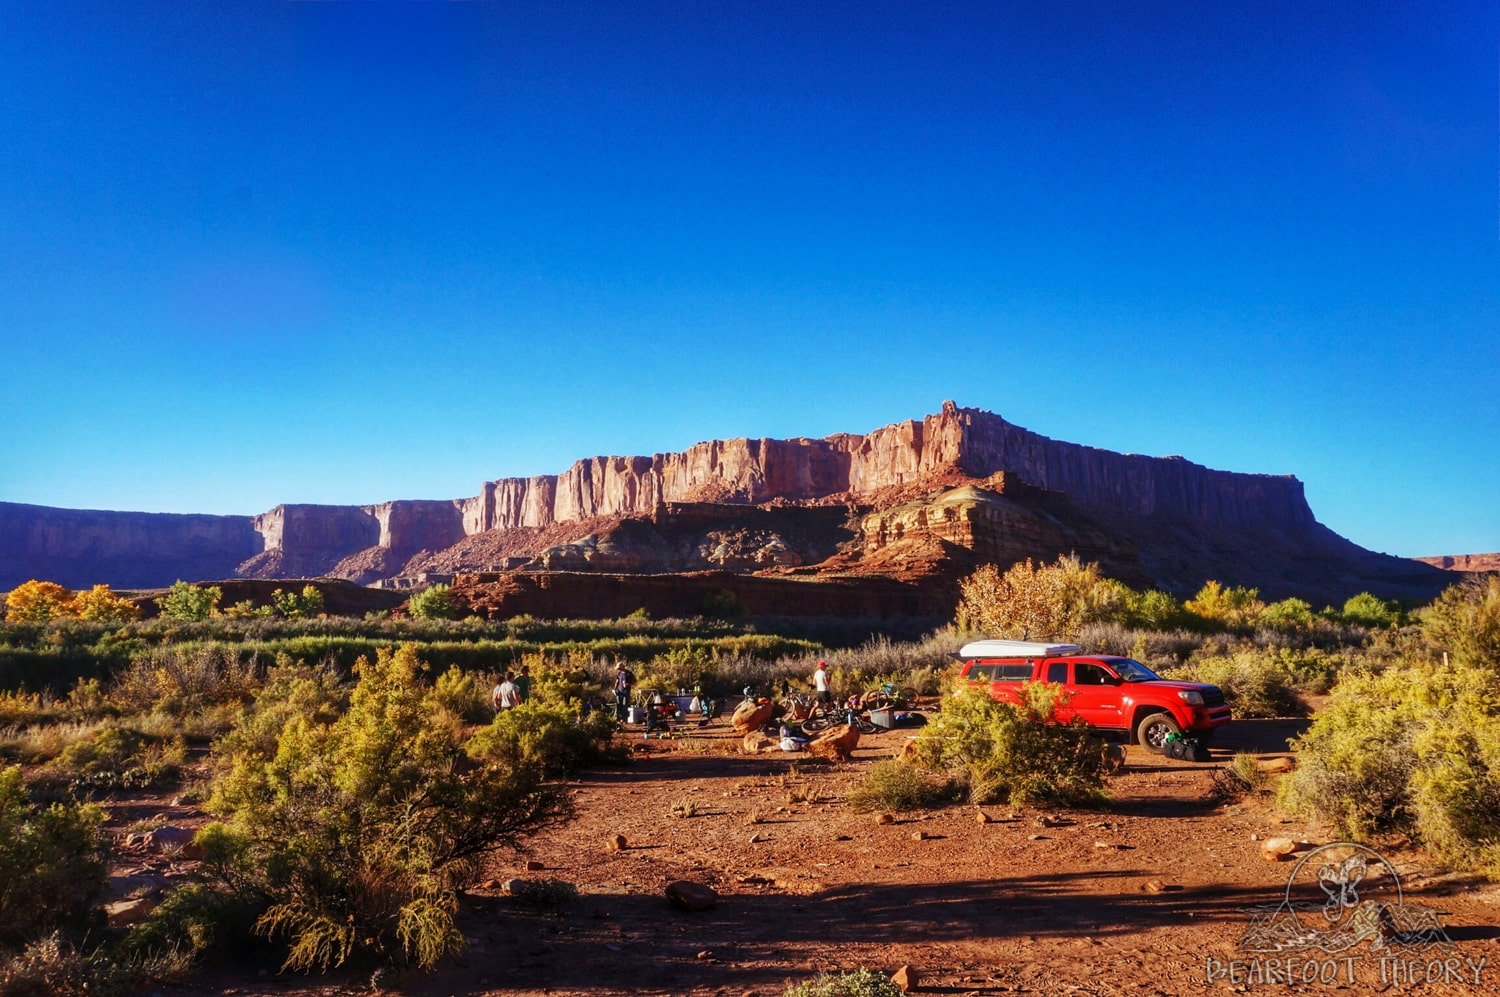 Potato Hollow Campsite on the White Rim Trail in Canyonlands National Park